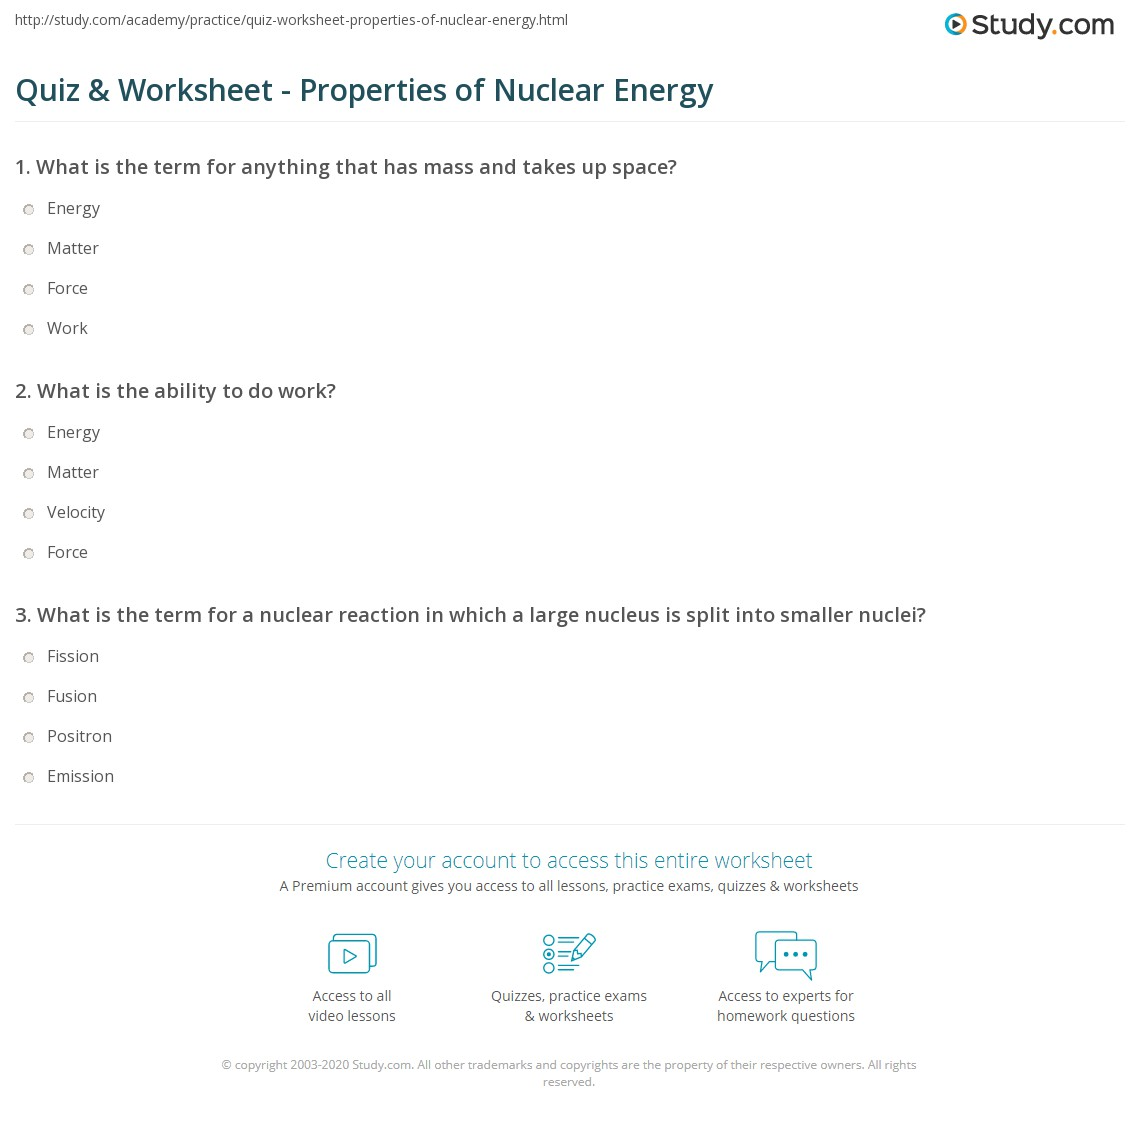 Quiz & Worksheet - Properties of Nuclear Energy | Study.com